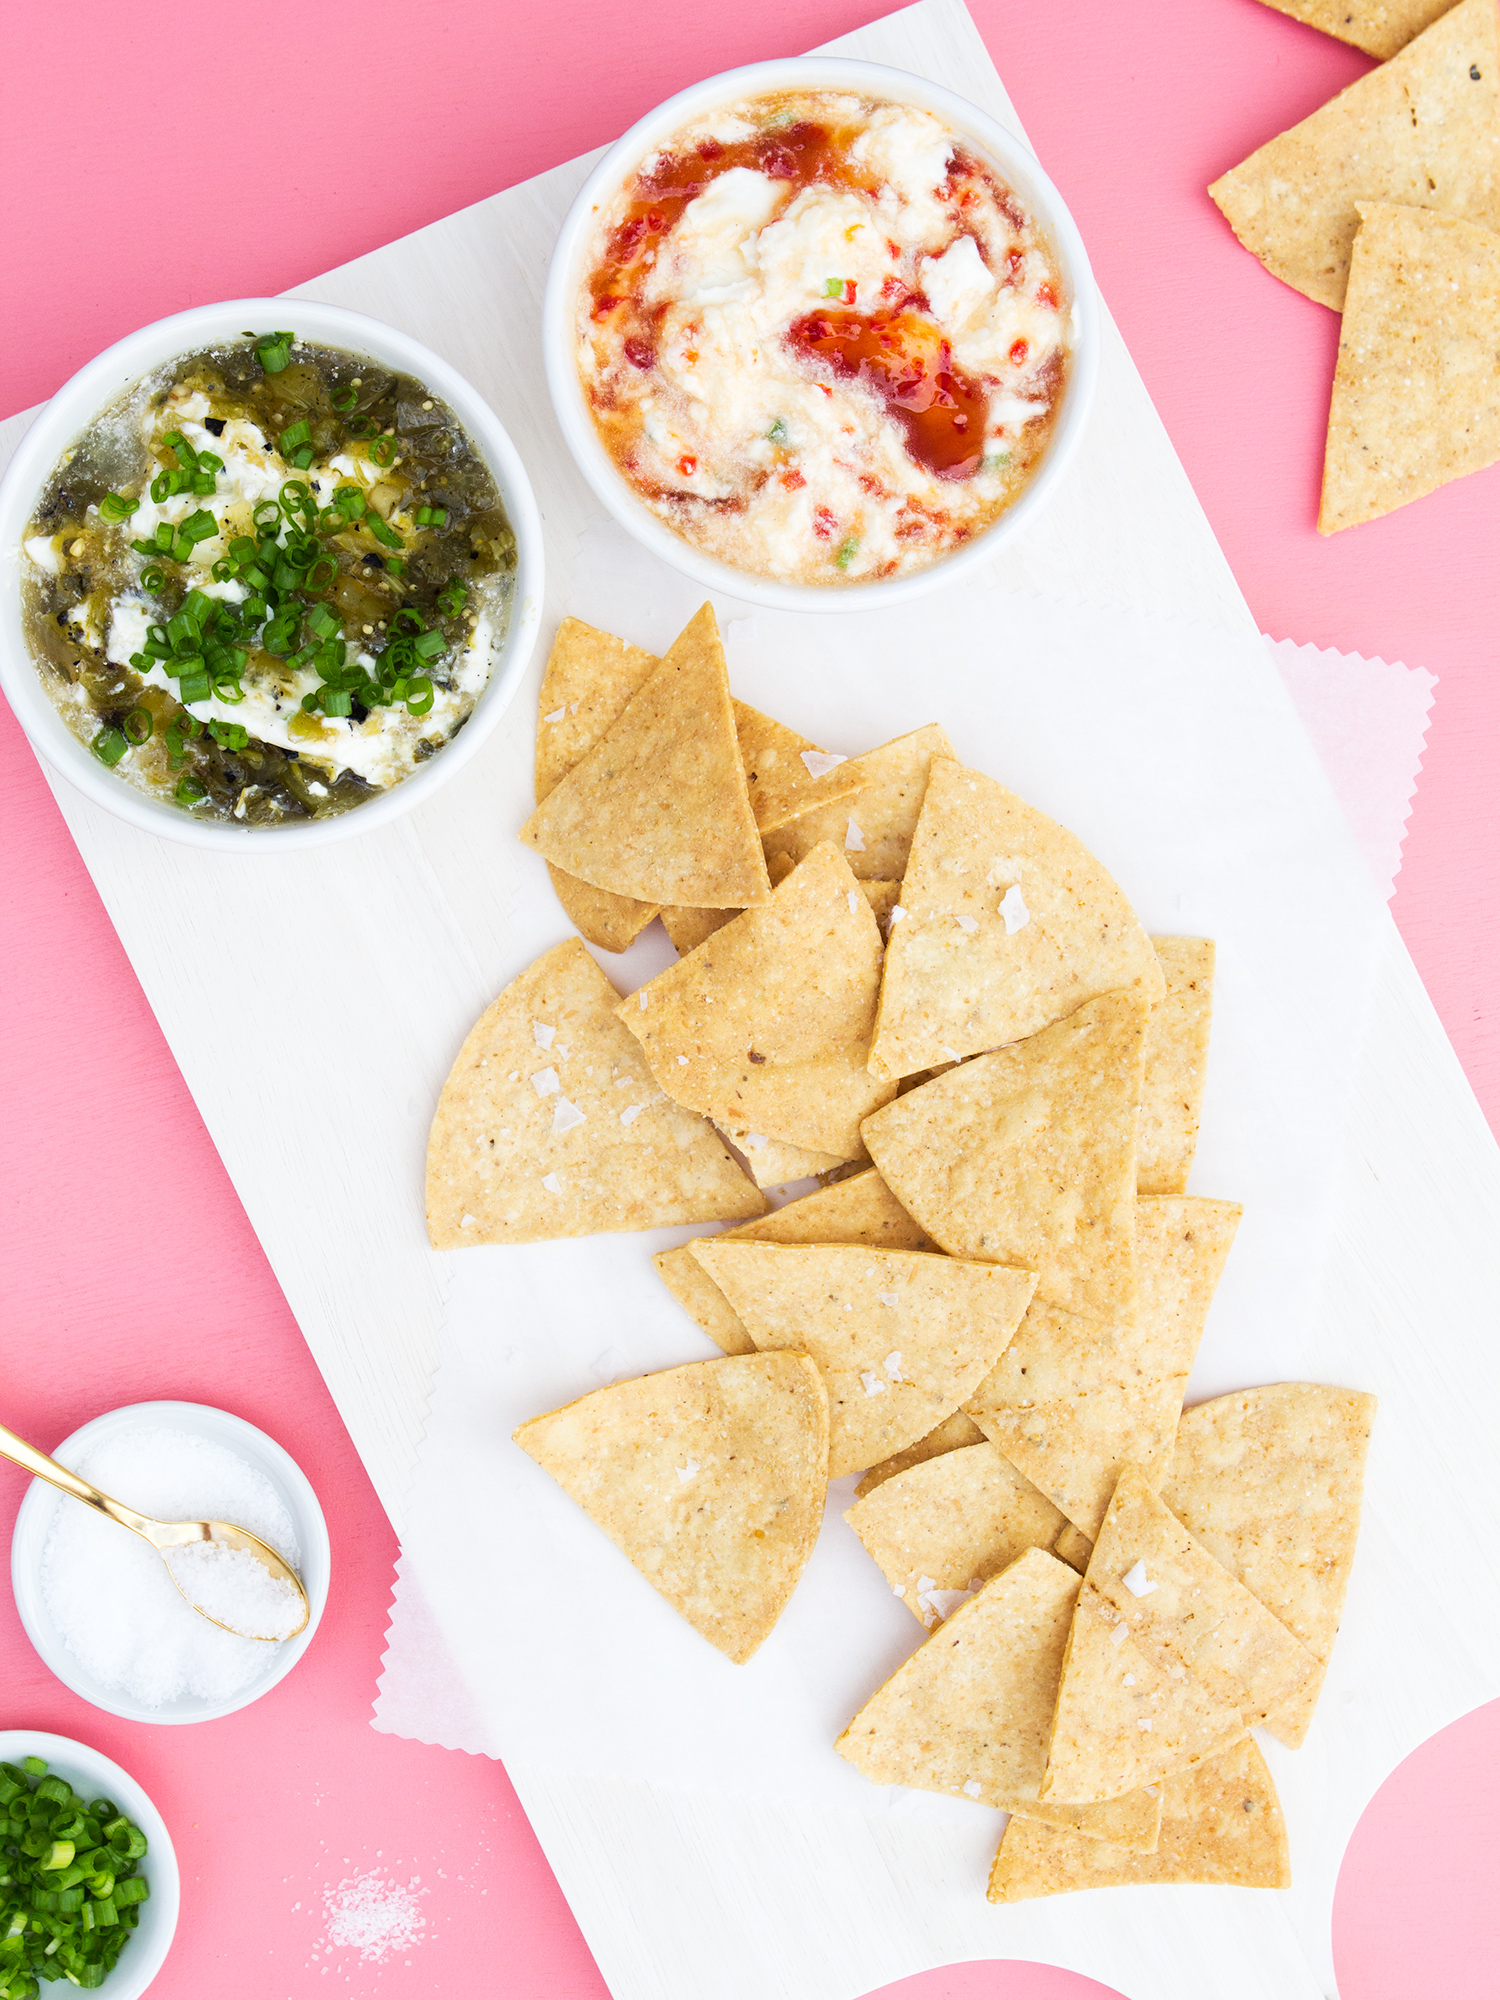 Try these easy spiced cream cheese dips at your next party! They only take a coupe minutes to prepare and are so delicious. #12MonthsofMartha